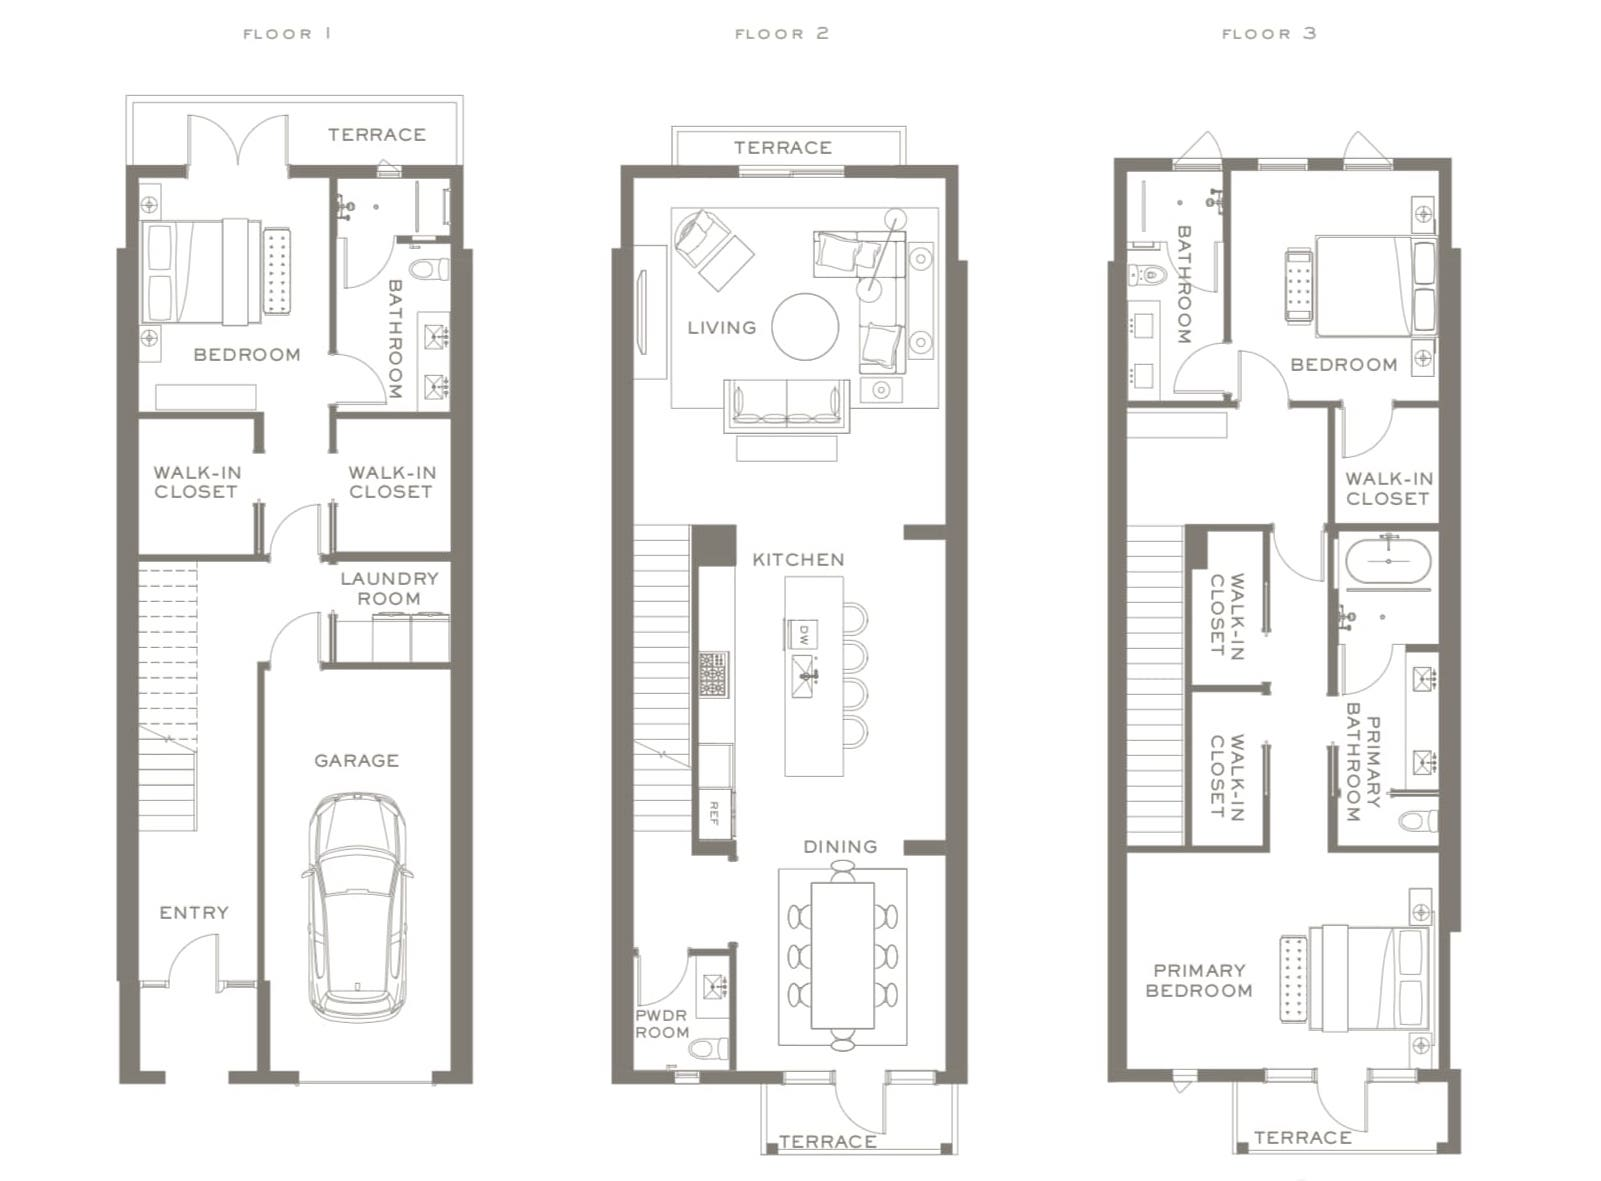 The Townhomes Floor Plans